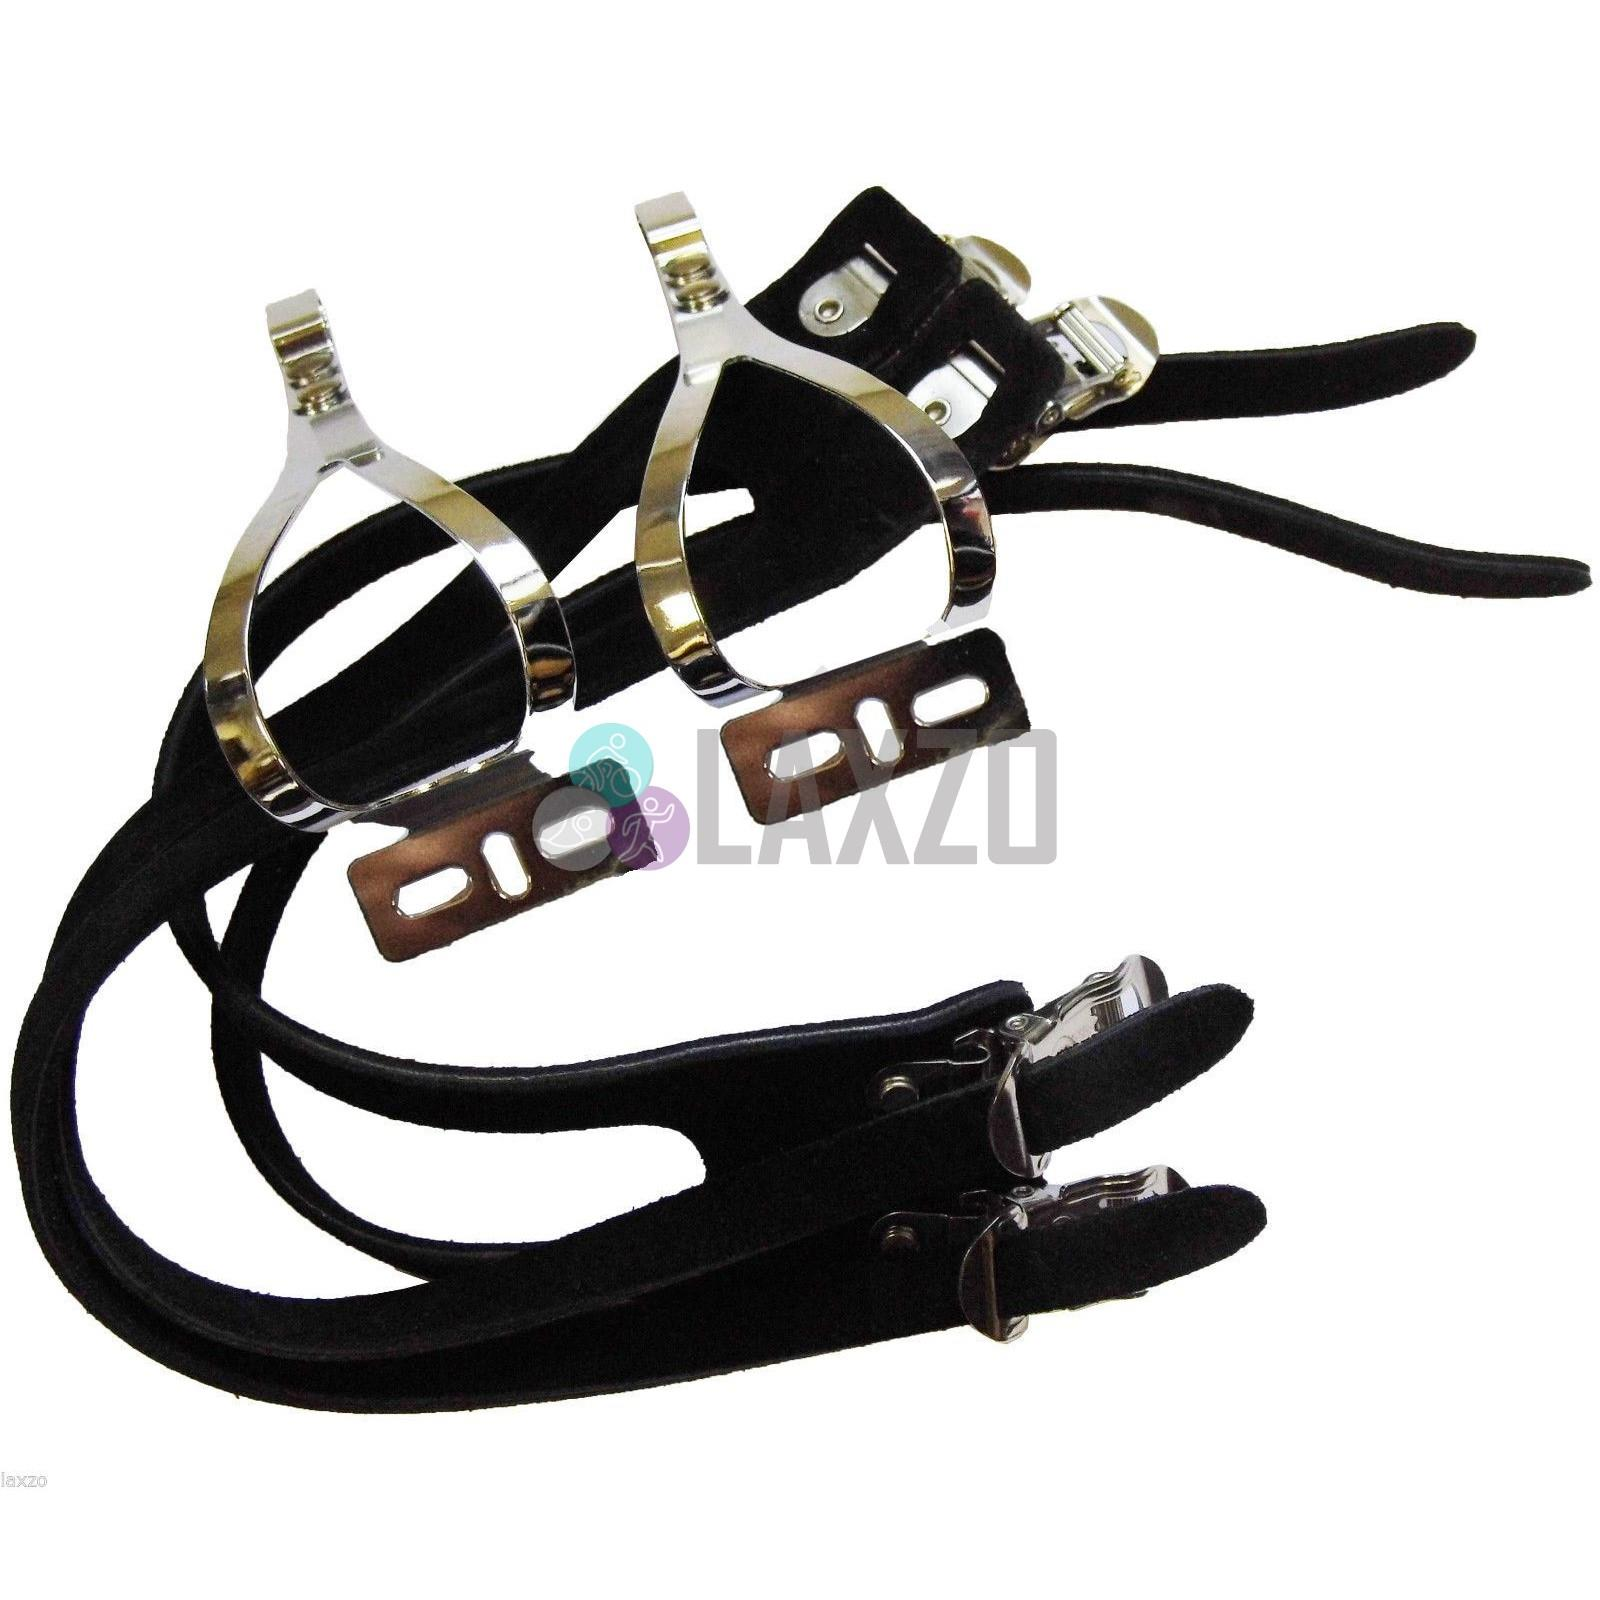 New Atozi Bicycle Pedal Steel Toe Clip and Double Leather Straps Black